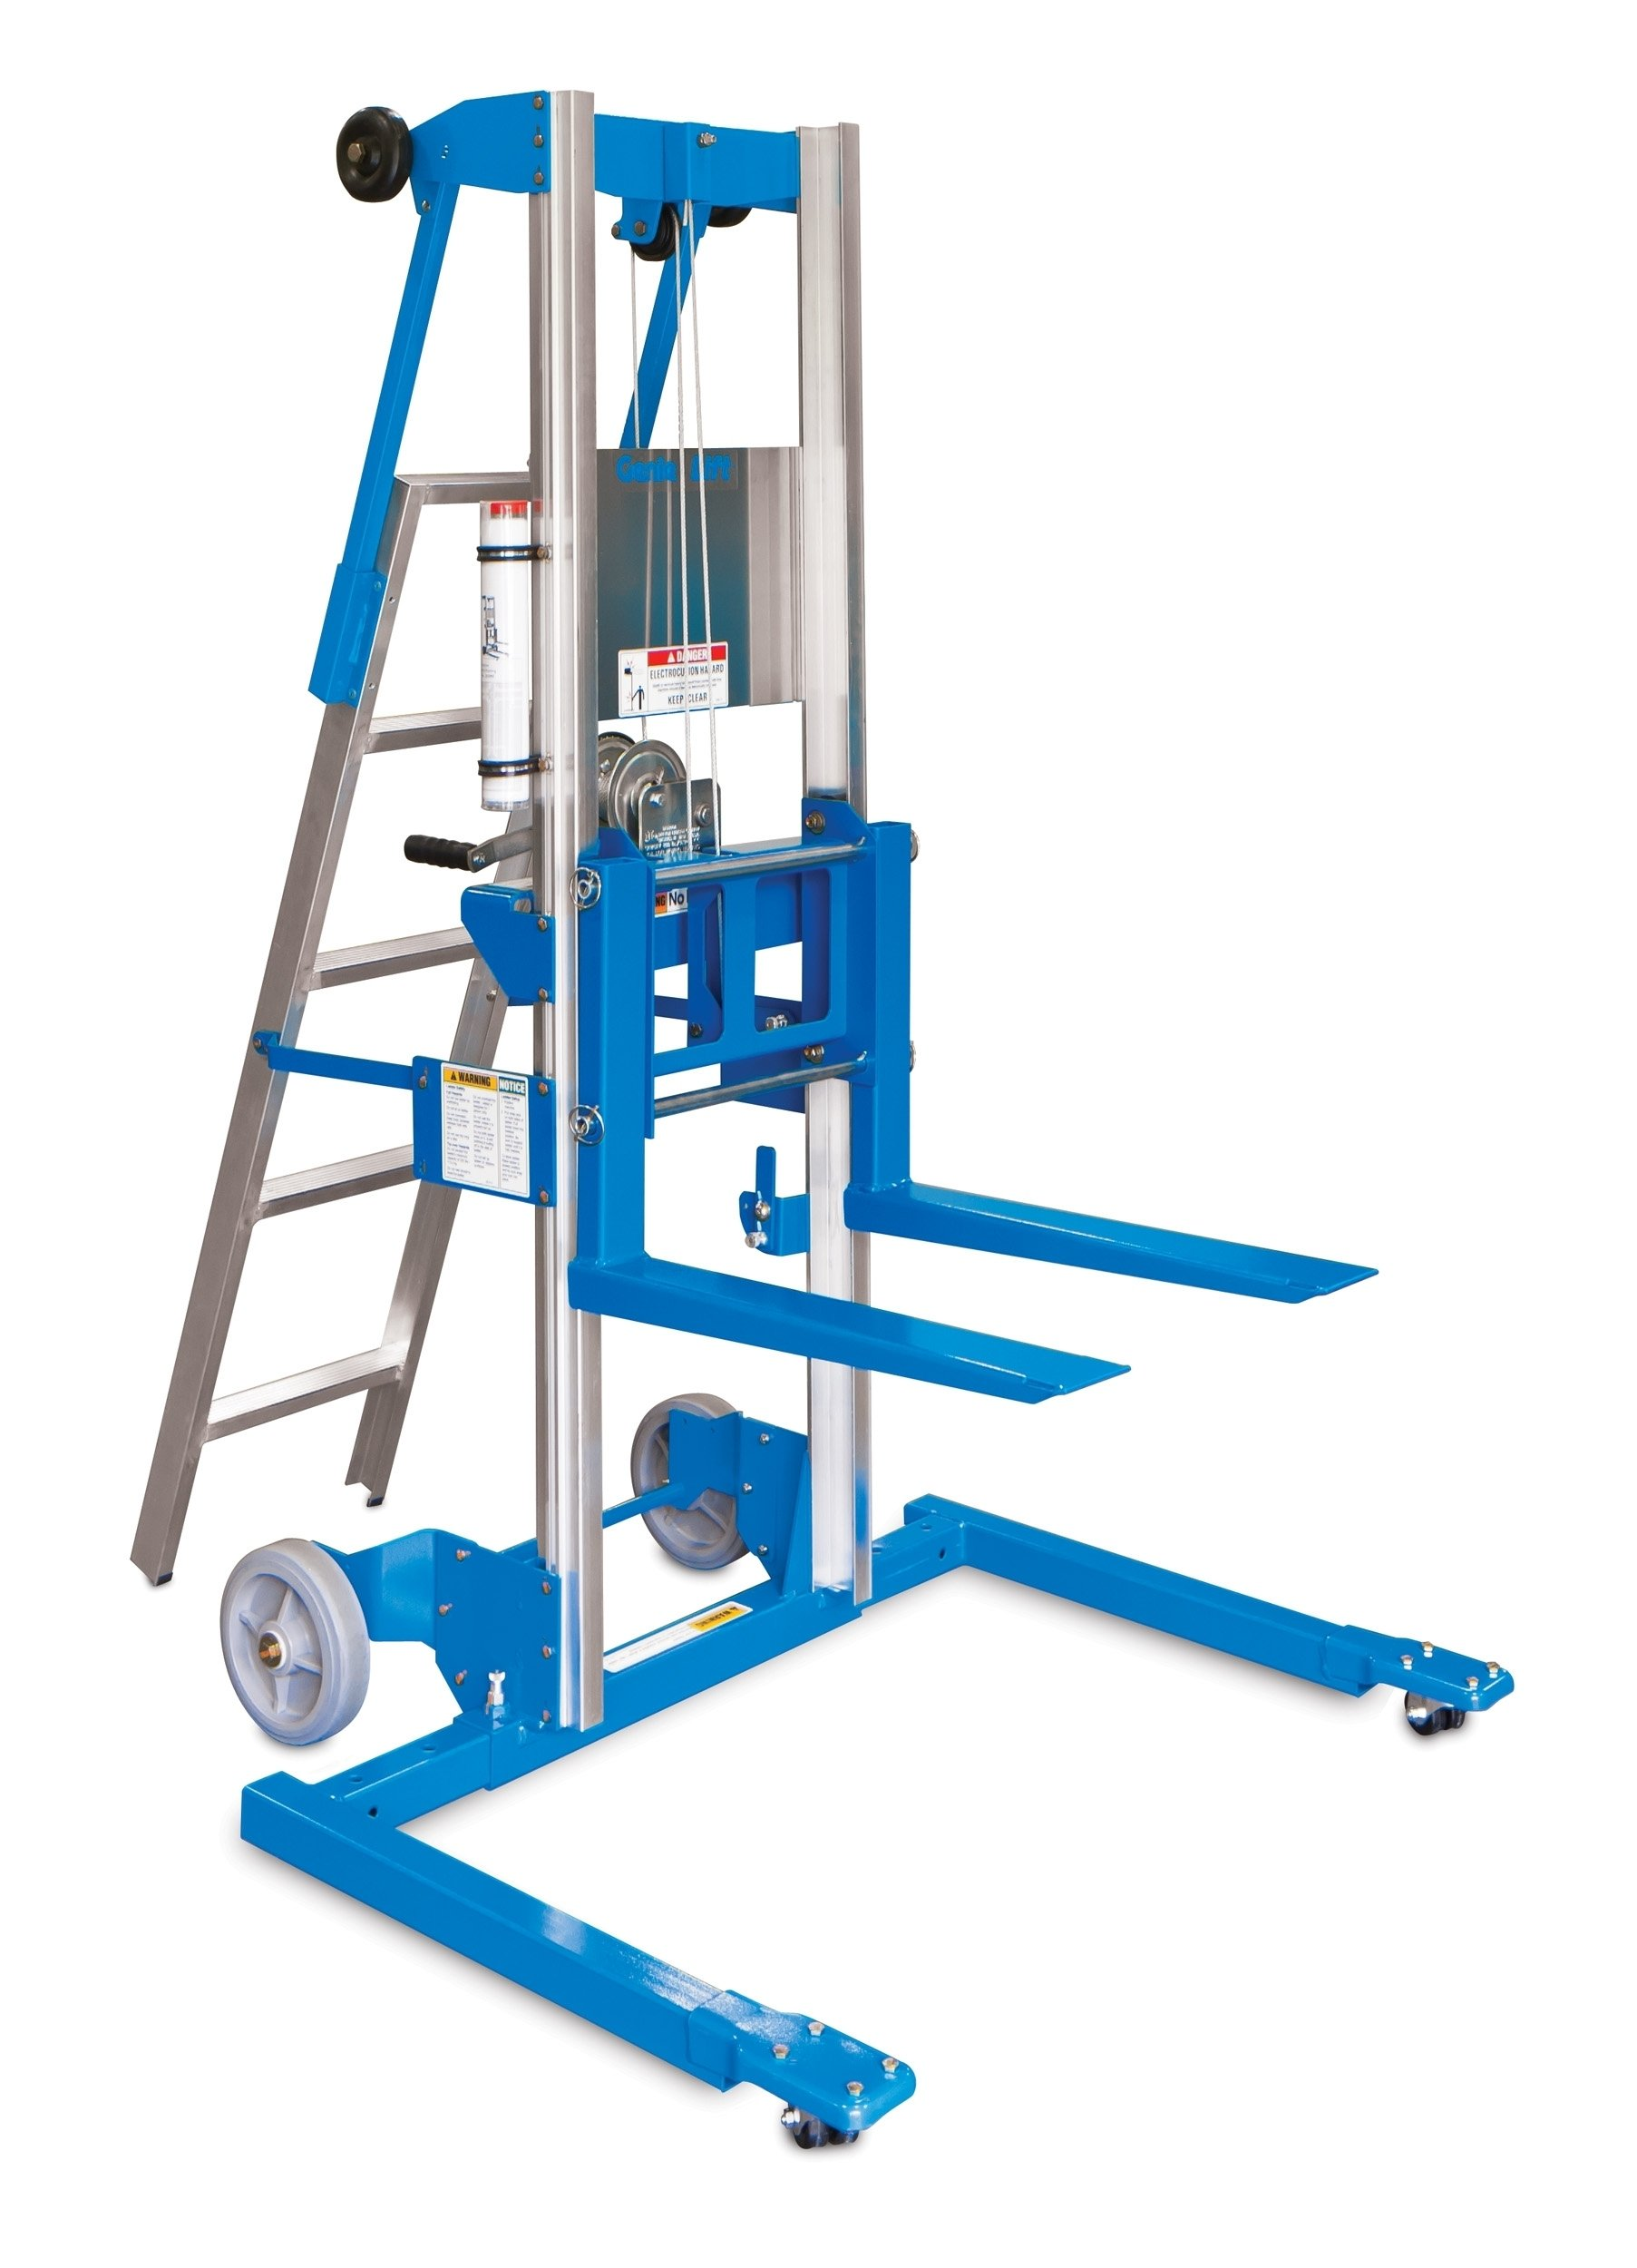 Cheap 12m Genie Aerial Lift Find Deals On 3232 Scissor Wiring Diagram Get Quotations Gl 10 Straddle Base With Ladder Heavy Duty Aluminum